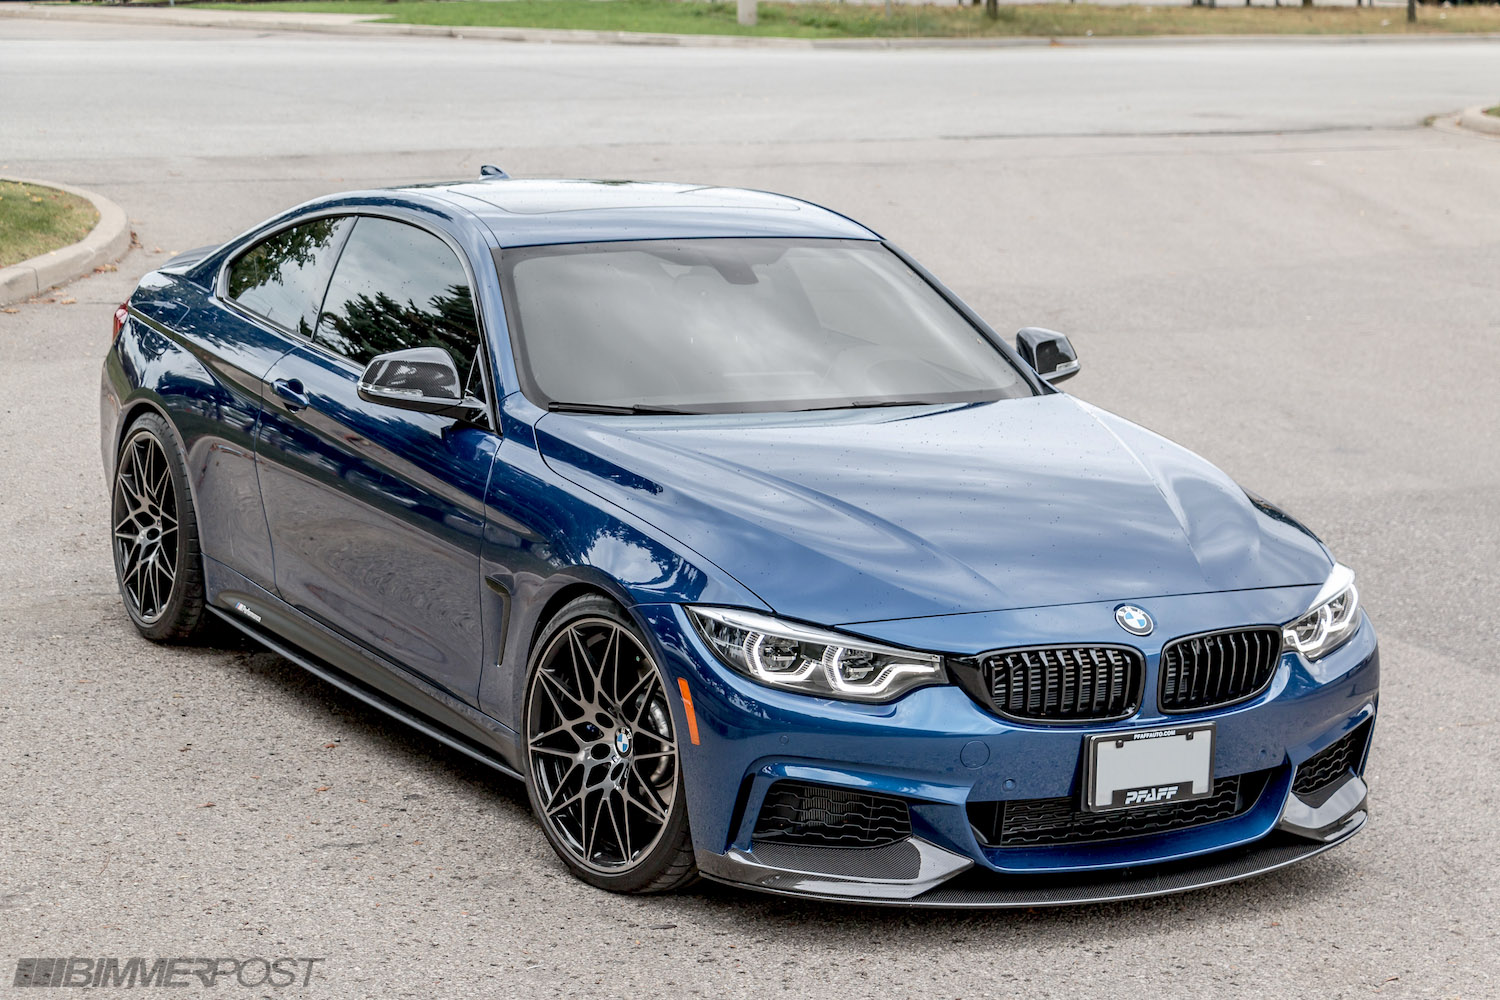 2018 bmw 440i m performance edition avus blue individual. Black Bedroom Furniture Sets. Home Design Ideas